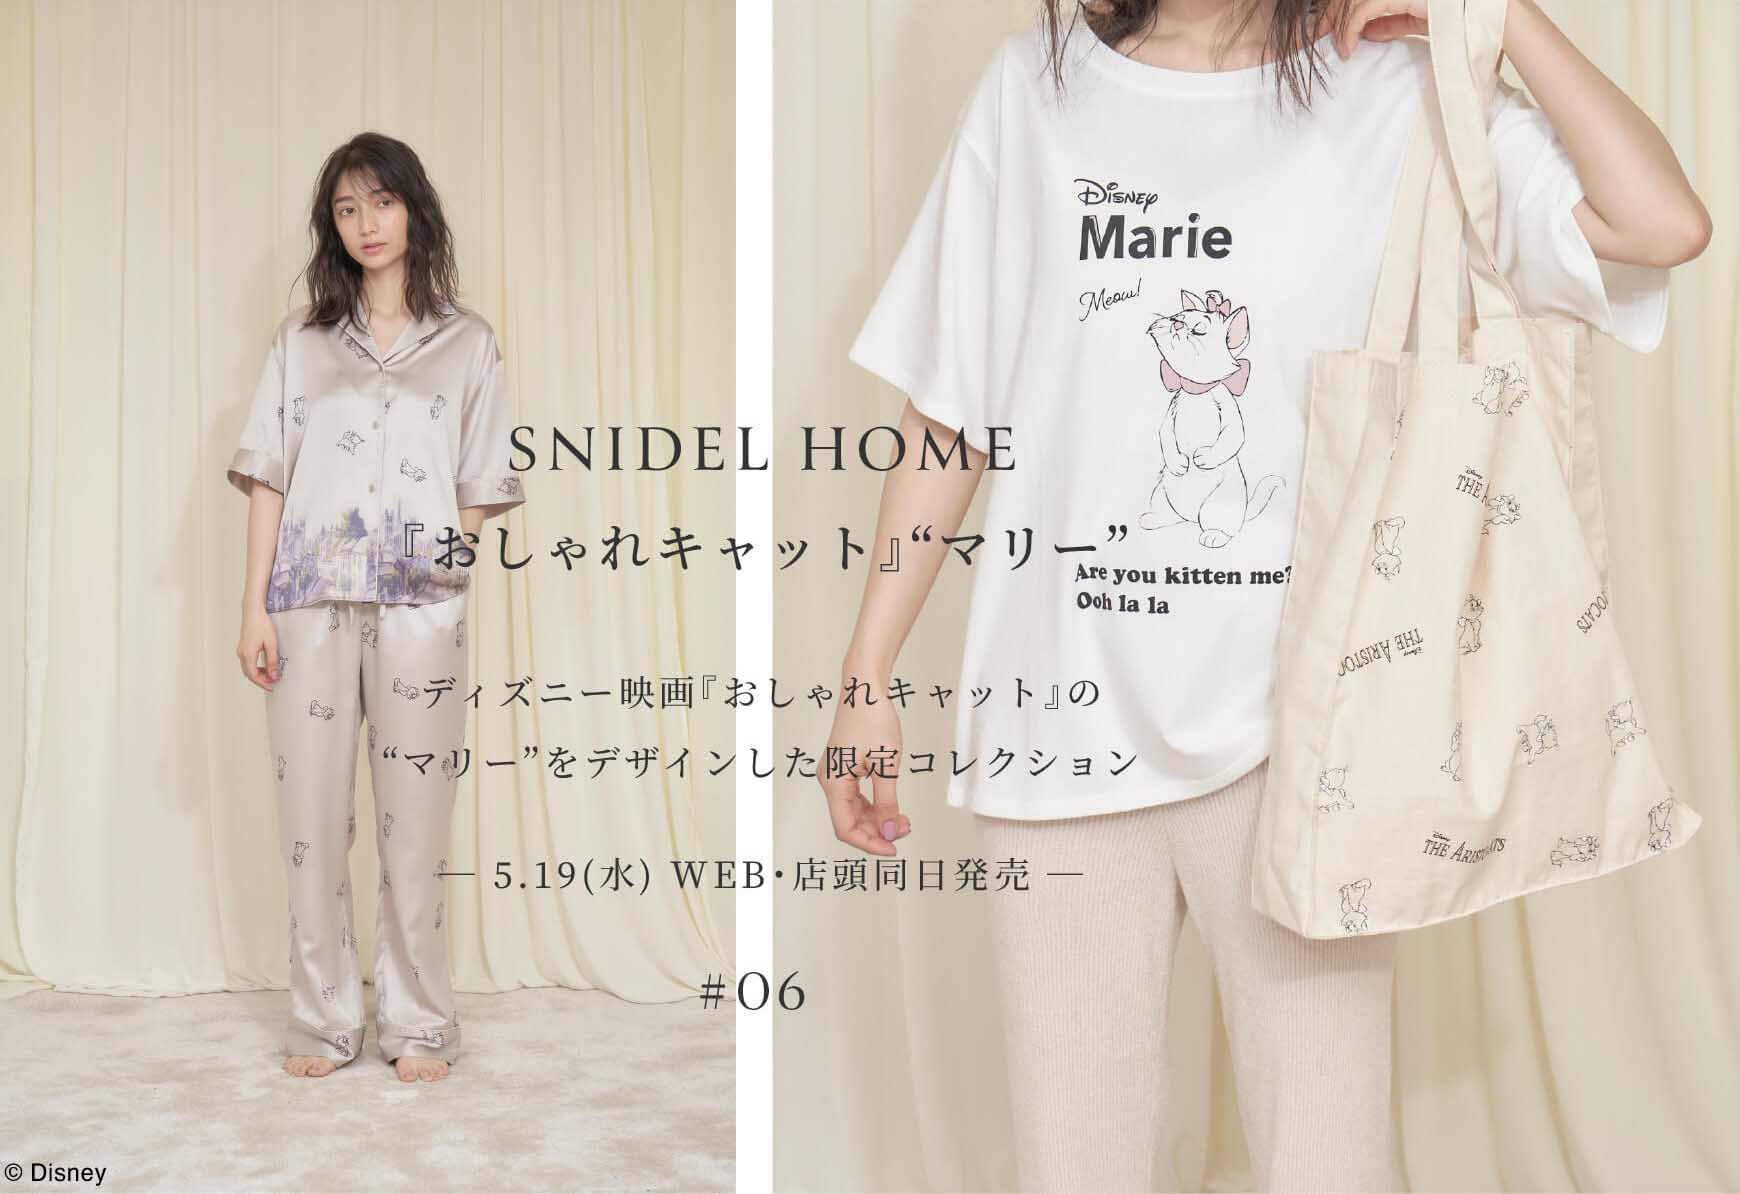 SNIDEL HOME SUMMER COLLECTION